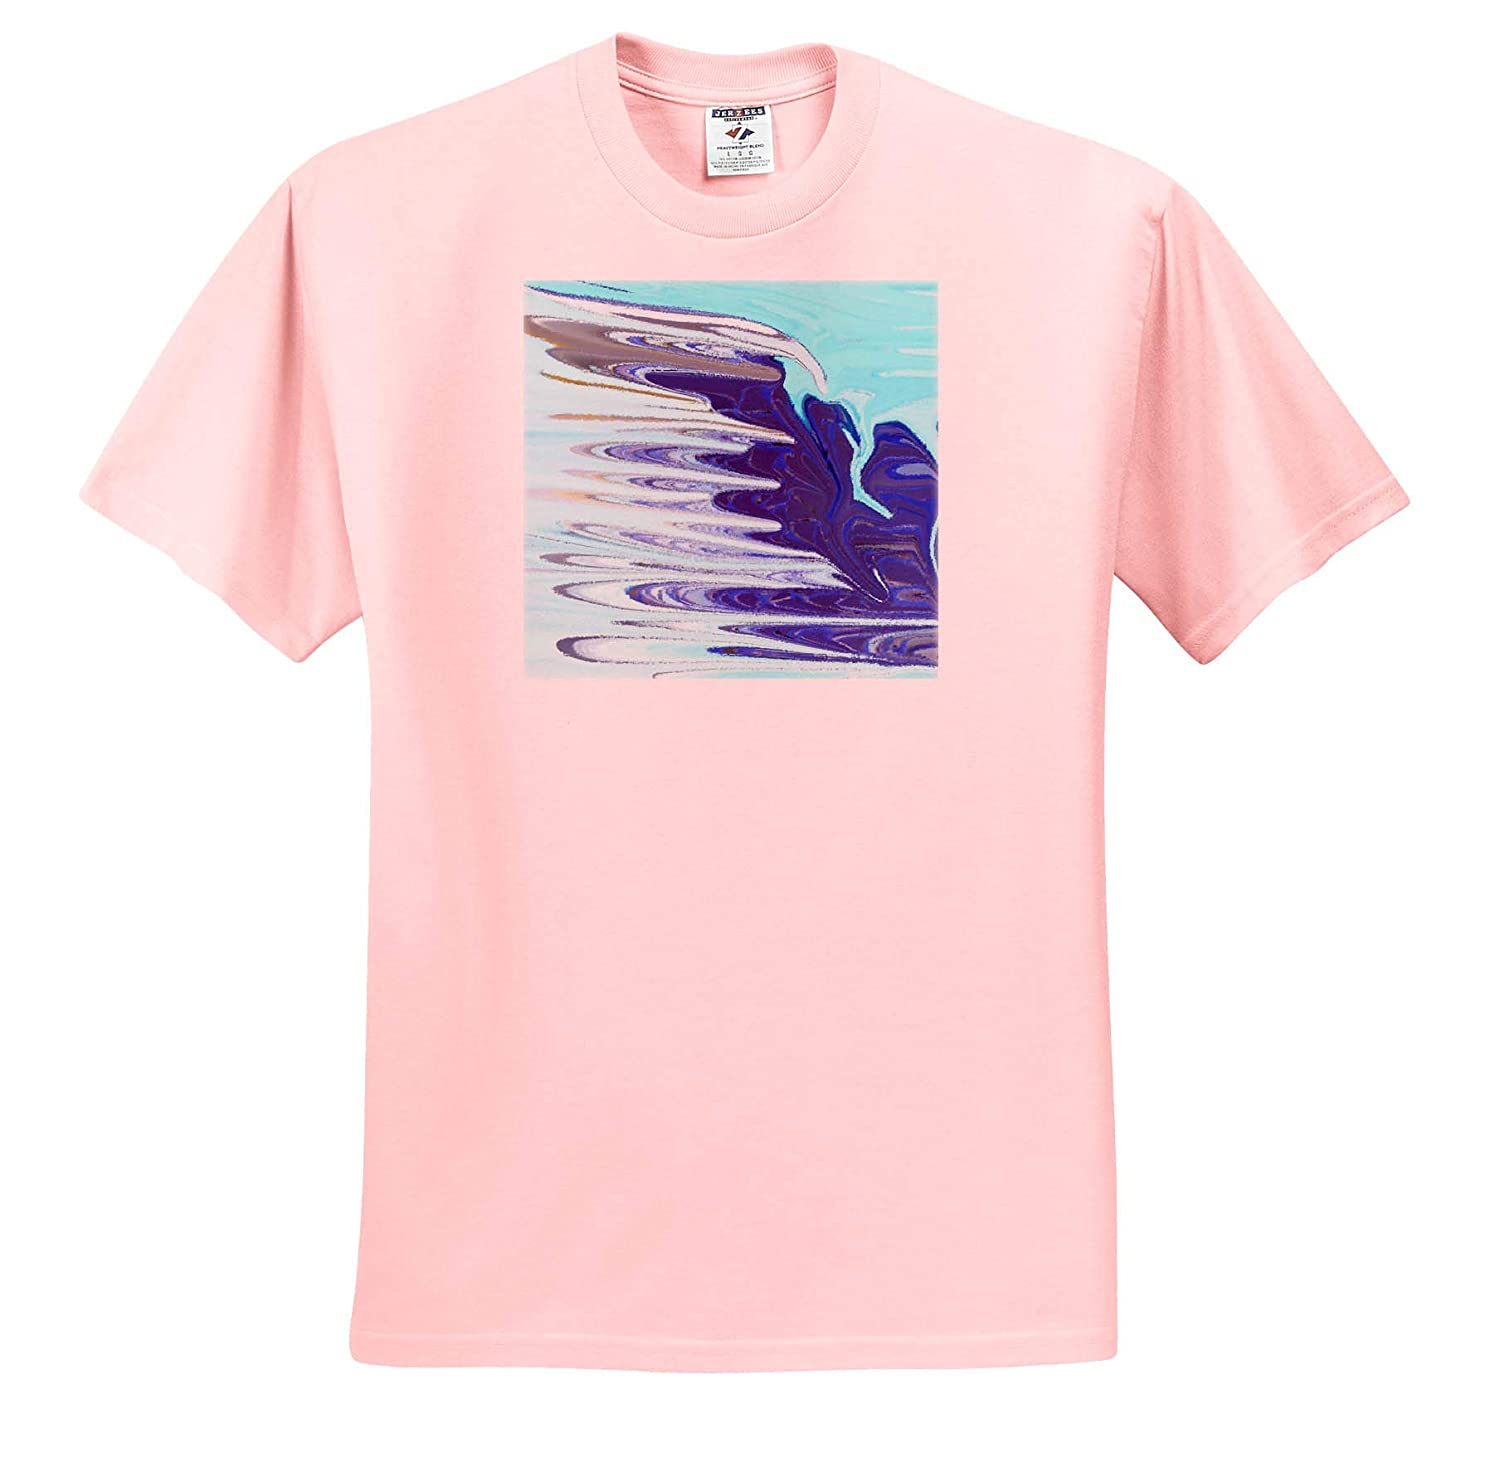 Geometric Abstract Image of Cobalt Aqua and Ice Blue Painting 3dRose Lens Art by Florene T-Shirts